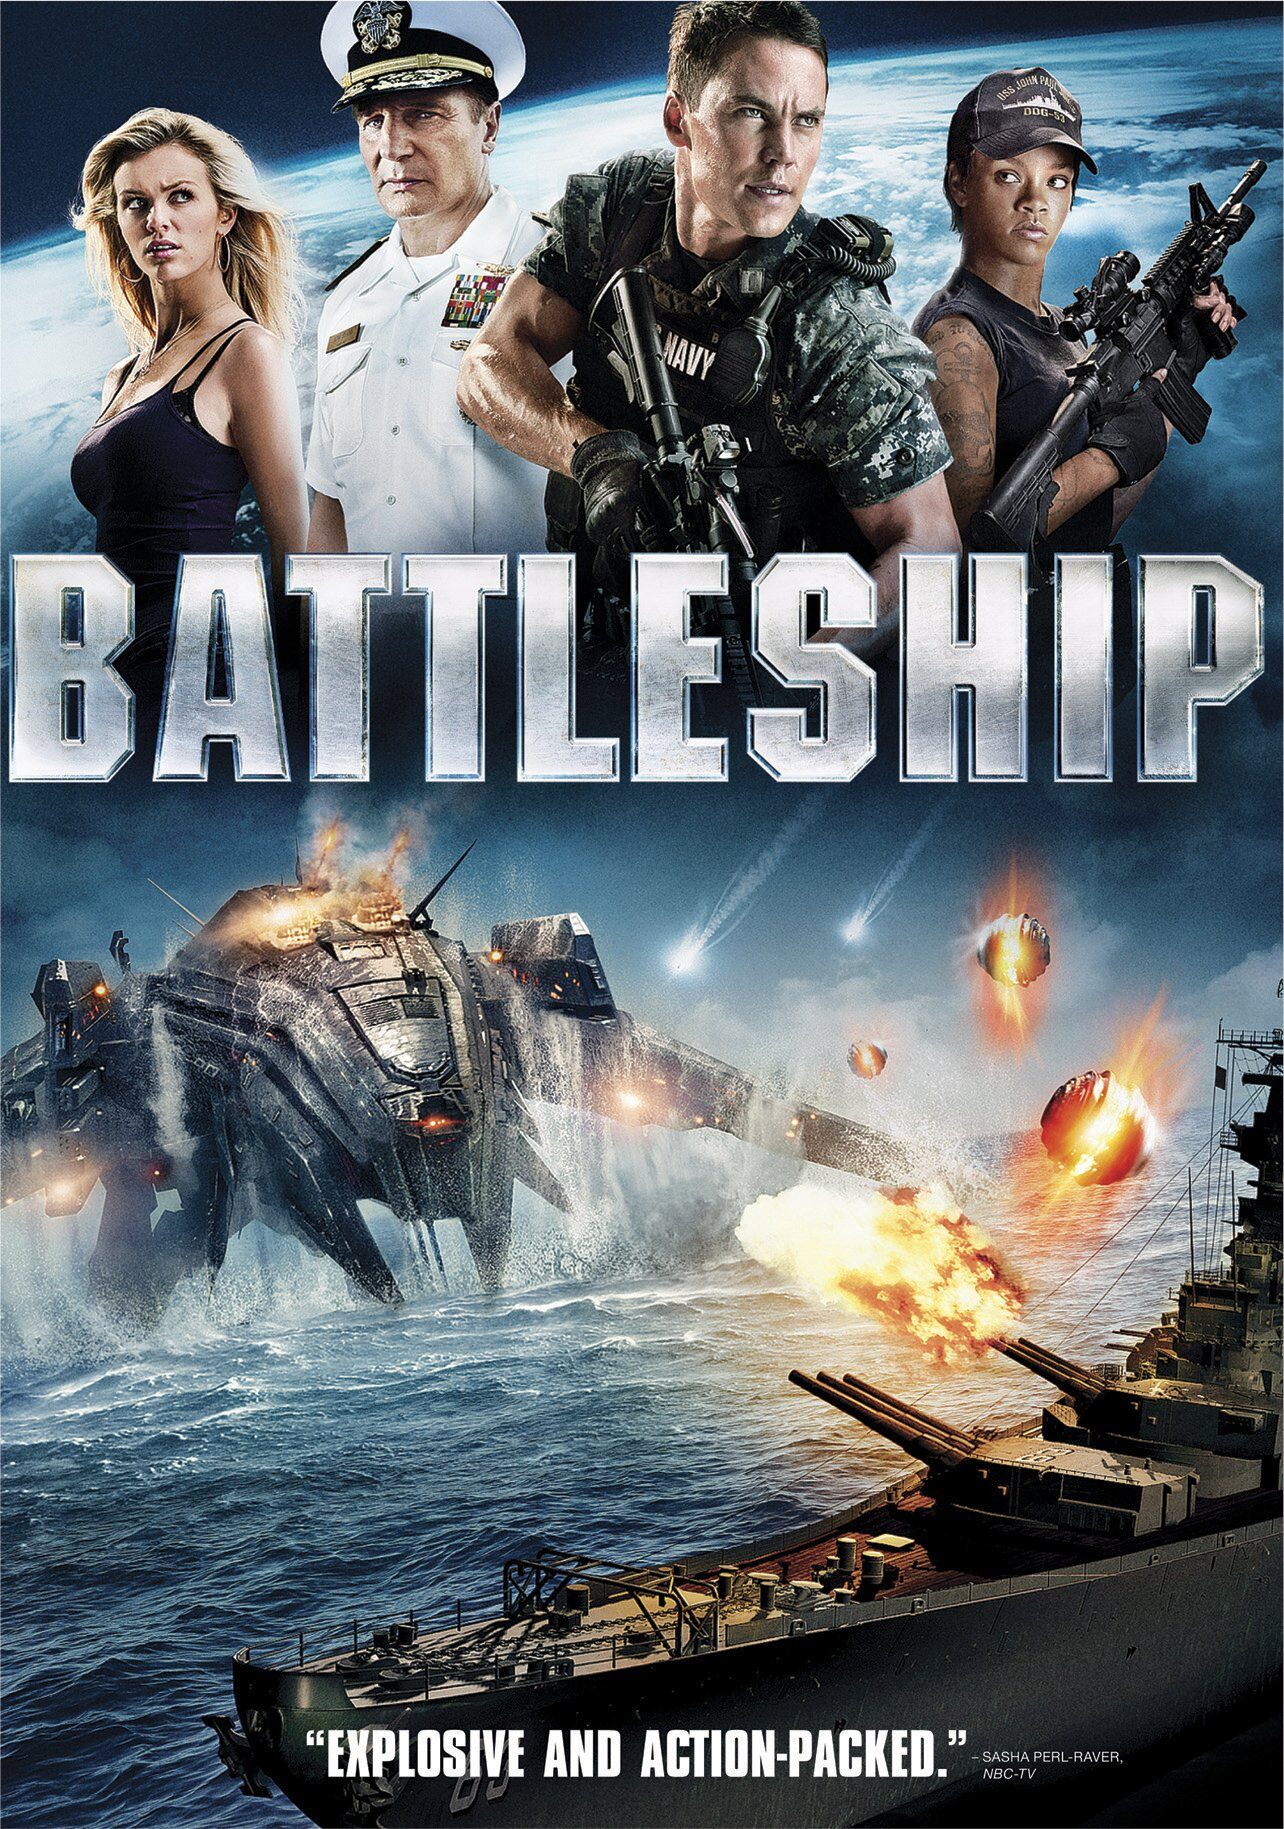 Battleship 2012 Full Movie Online